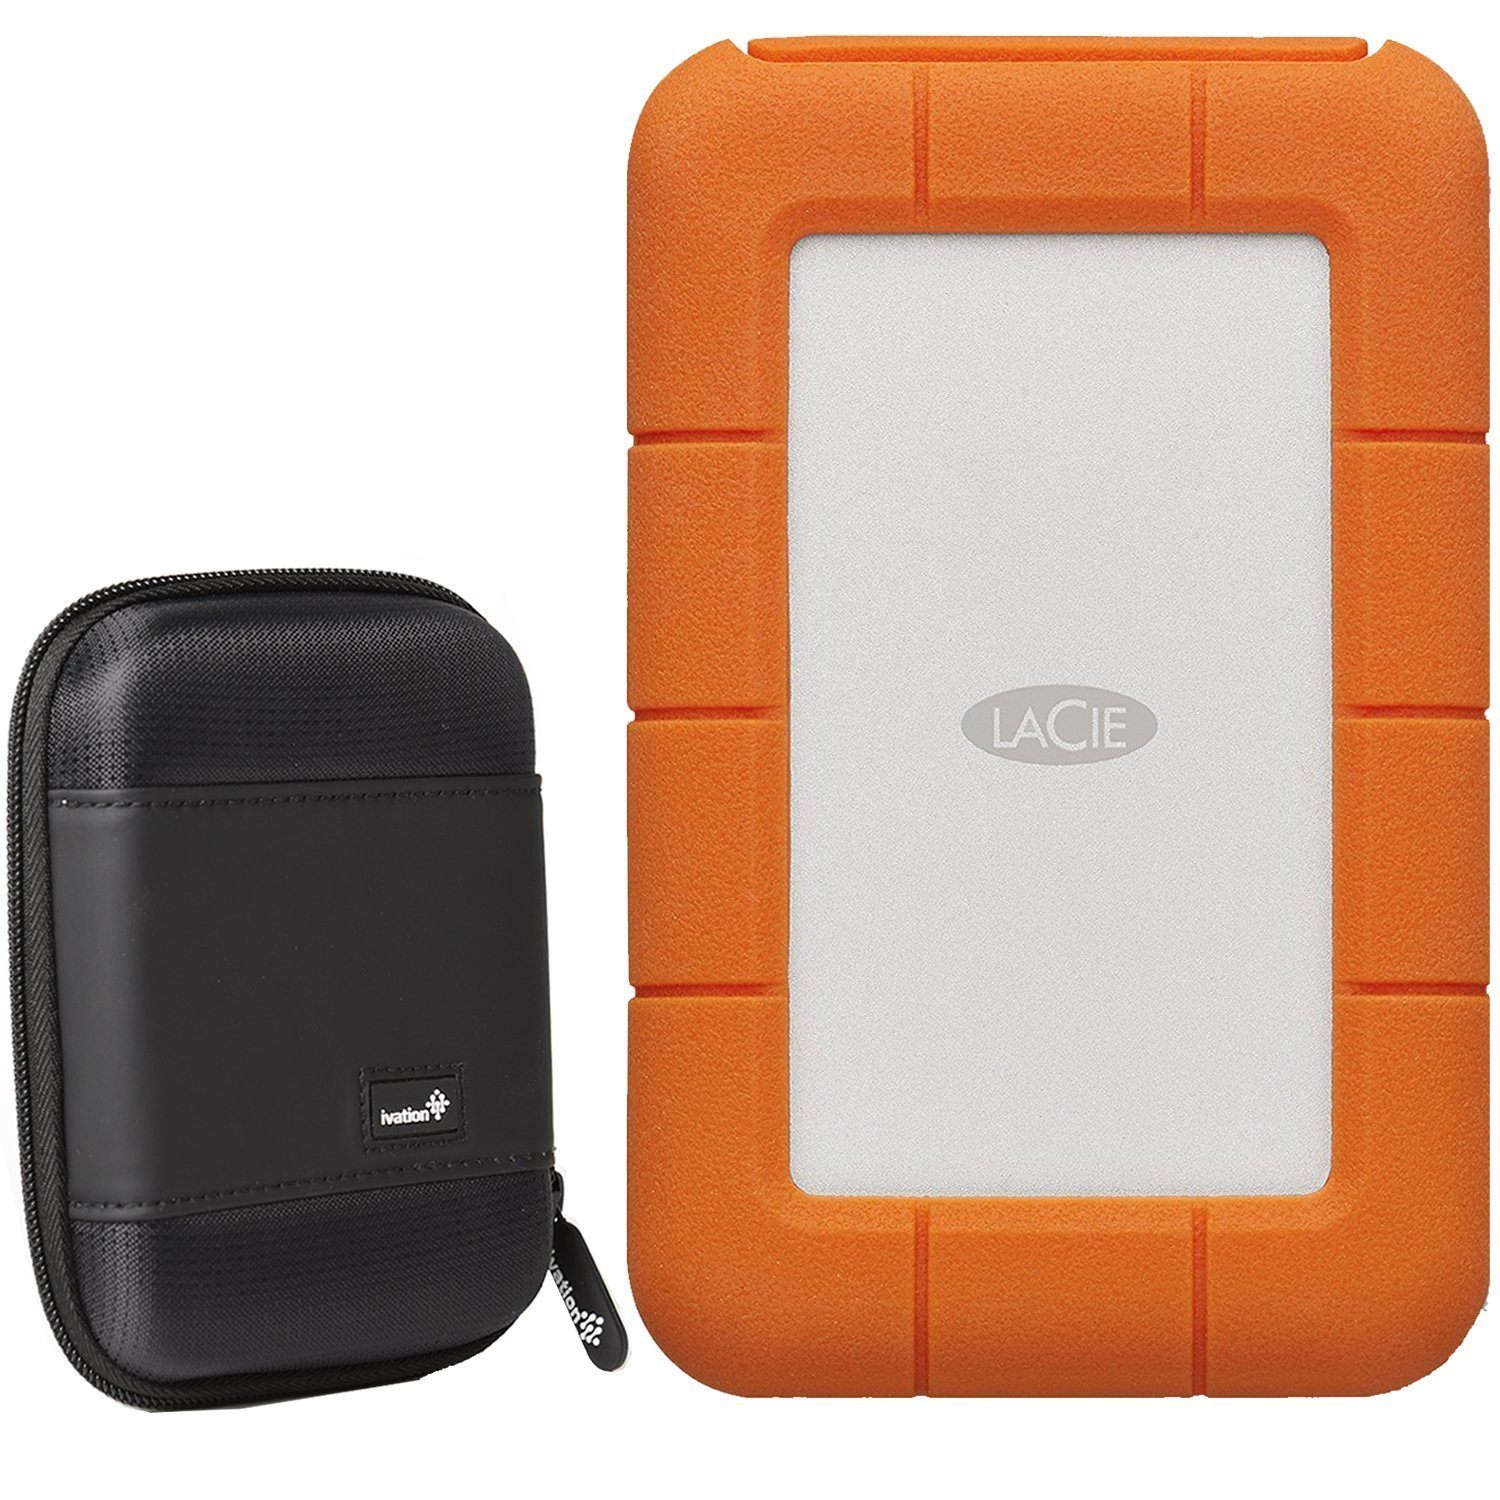 lacie external hard drive drivers for windows 10